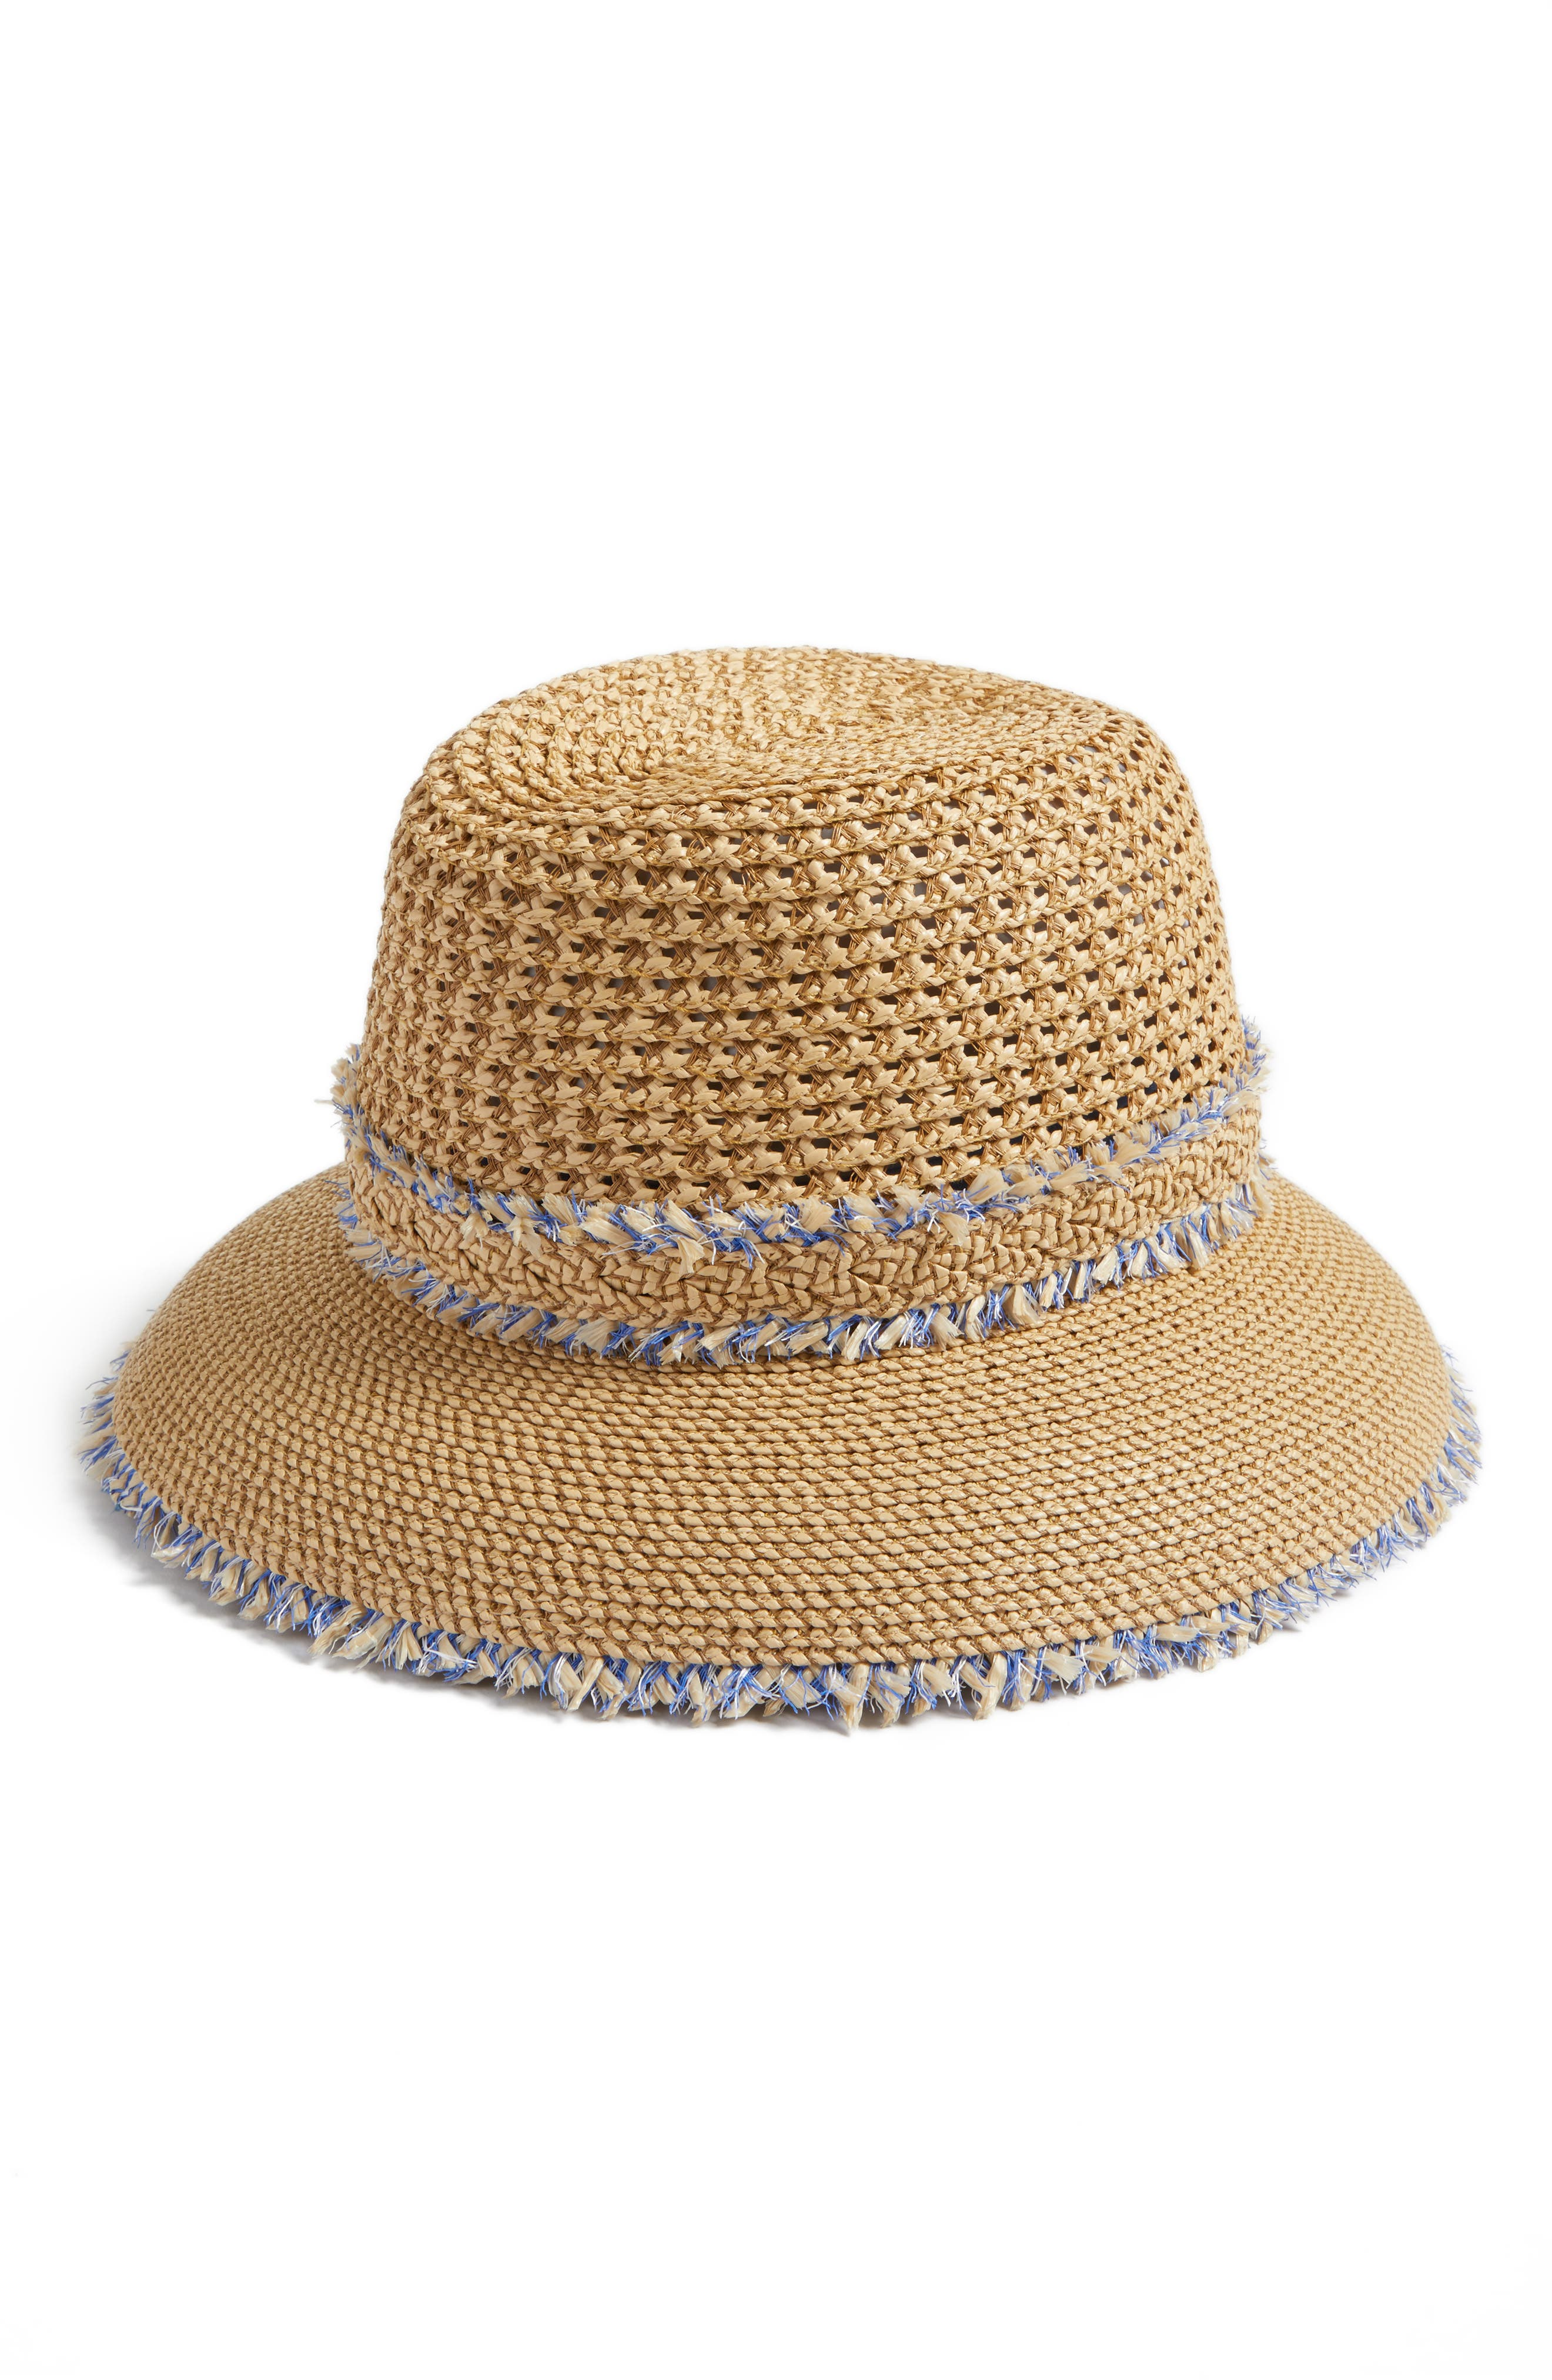 Lulu Squishee<sup>®</sup> Straw Hat,                             Main thumbnail 1, color,                             Peanut Mix